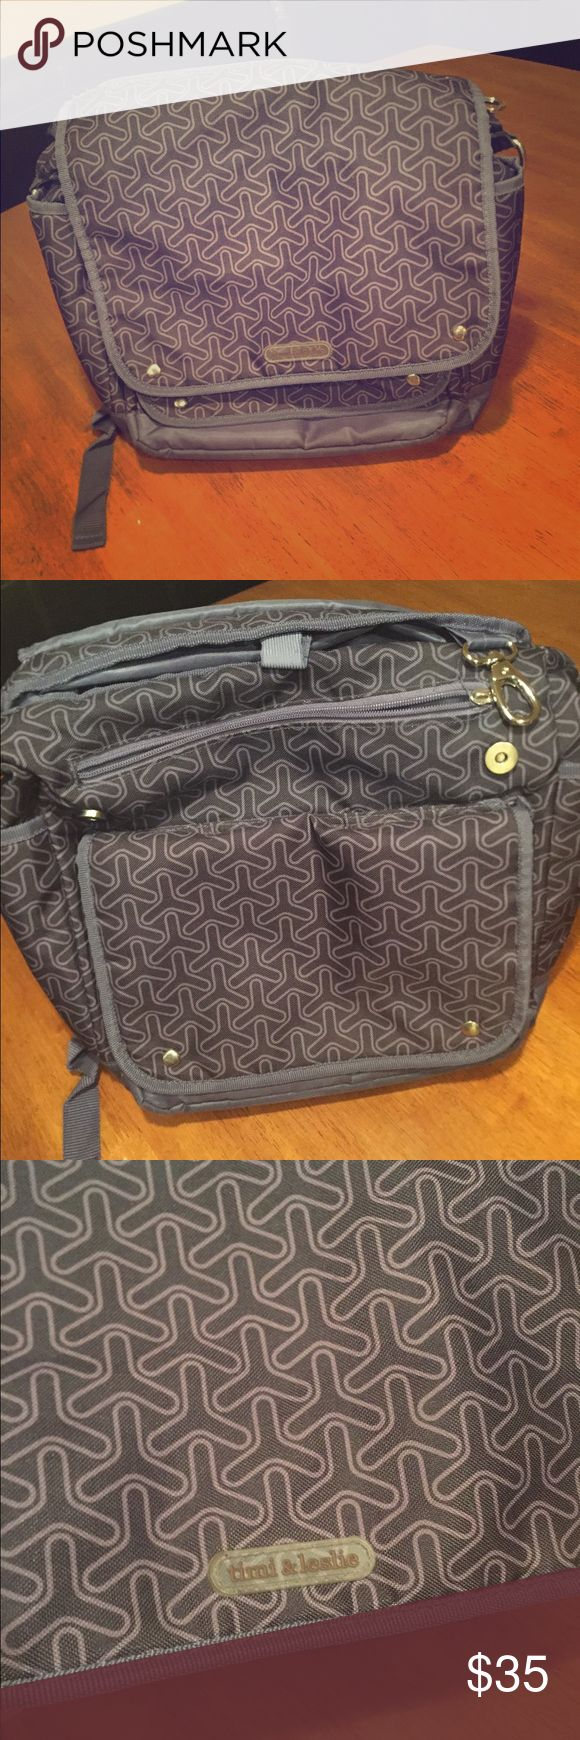 Timi & Leslie diaper bag/backpack. Patterned Timi & Leslie diaper bag that also has straps to carry it on your back. Lots of pockets. Key fob. Easy to clean. One zipper is missing its pull. Great used condition. Timi & Leslie Bags Baby Bags